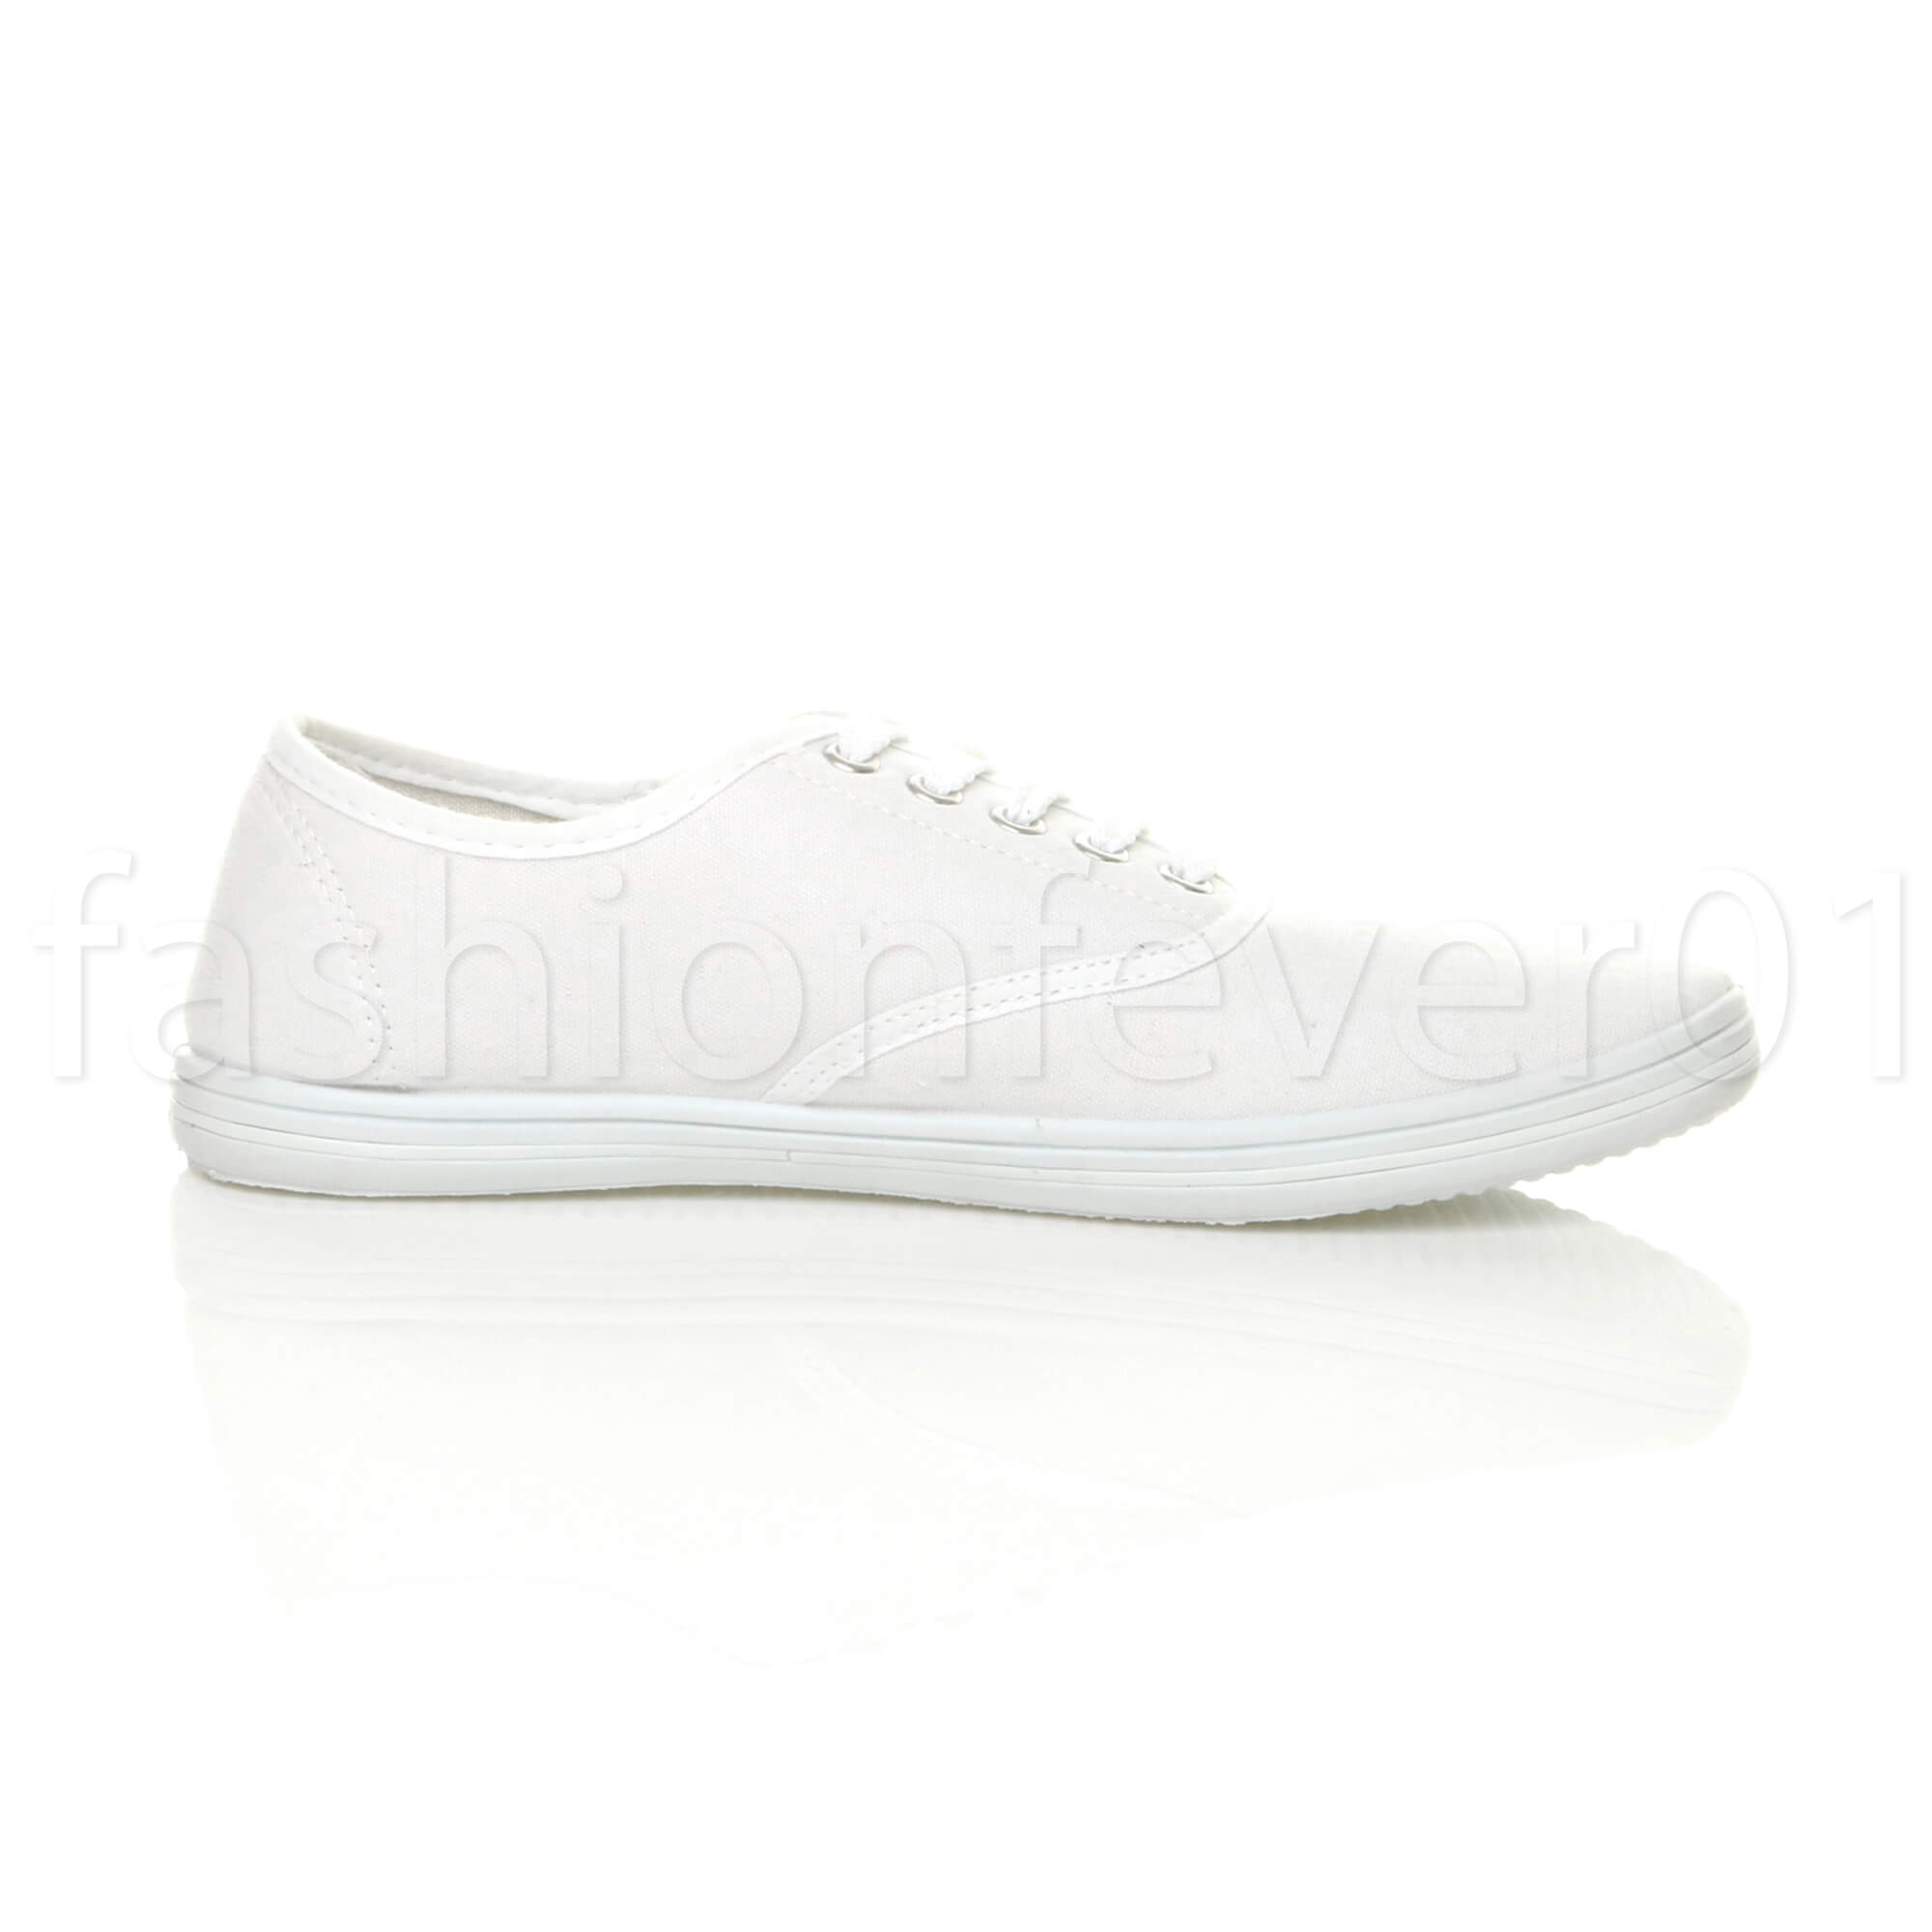 MENS-CANVAS-TRAINERS-PLIMSOLES-RETRO-PLIMSOLLS-SNEAKERS-LACE-UP-SAND-SHOES-SIZE